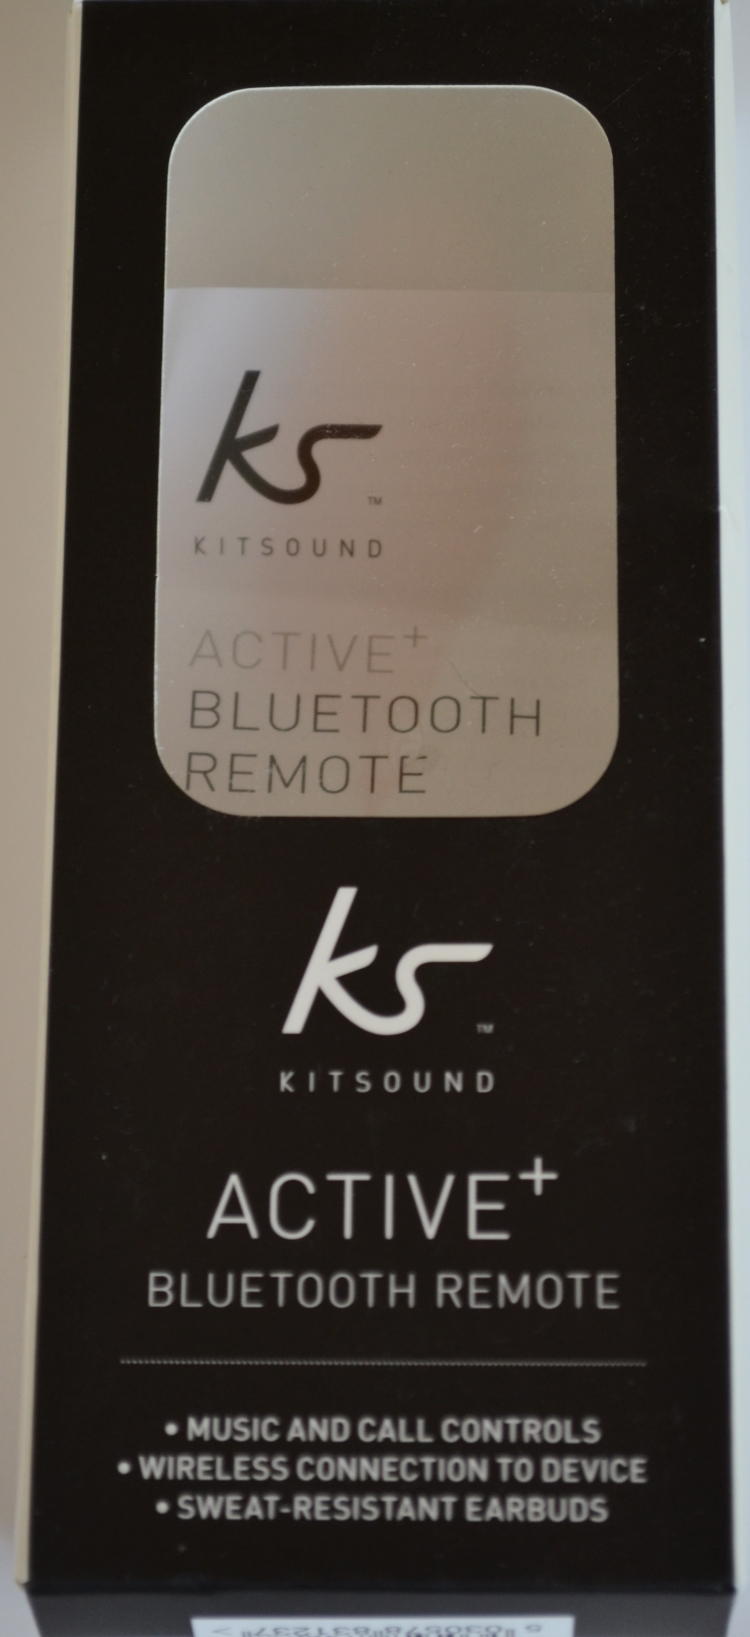 KS Active+ Bluetooth Remote